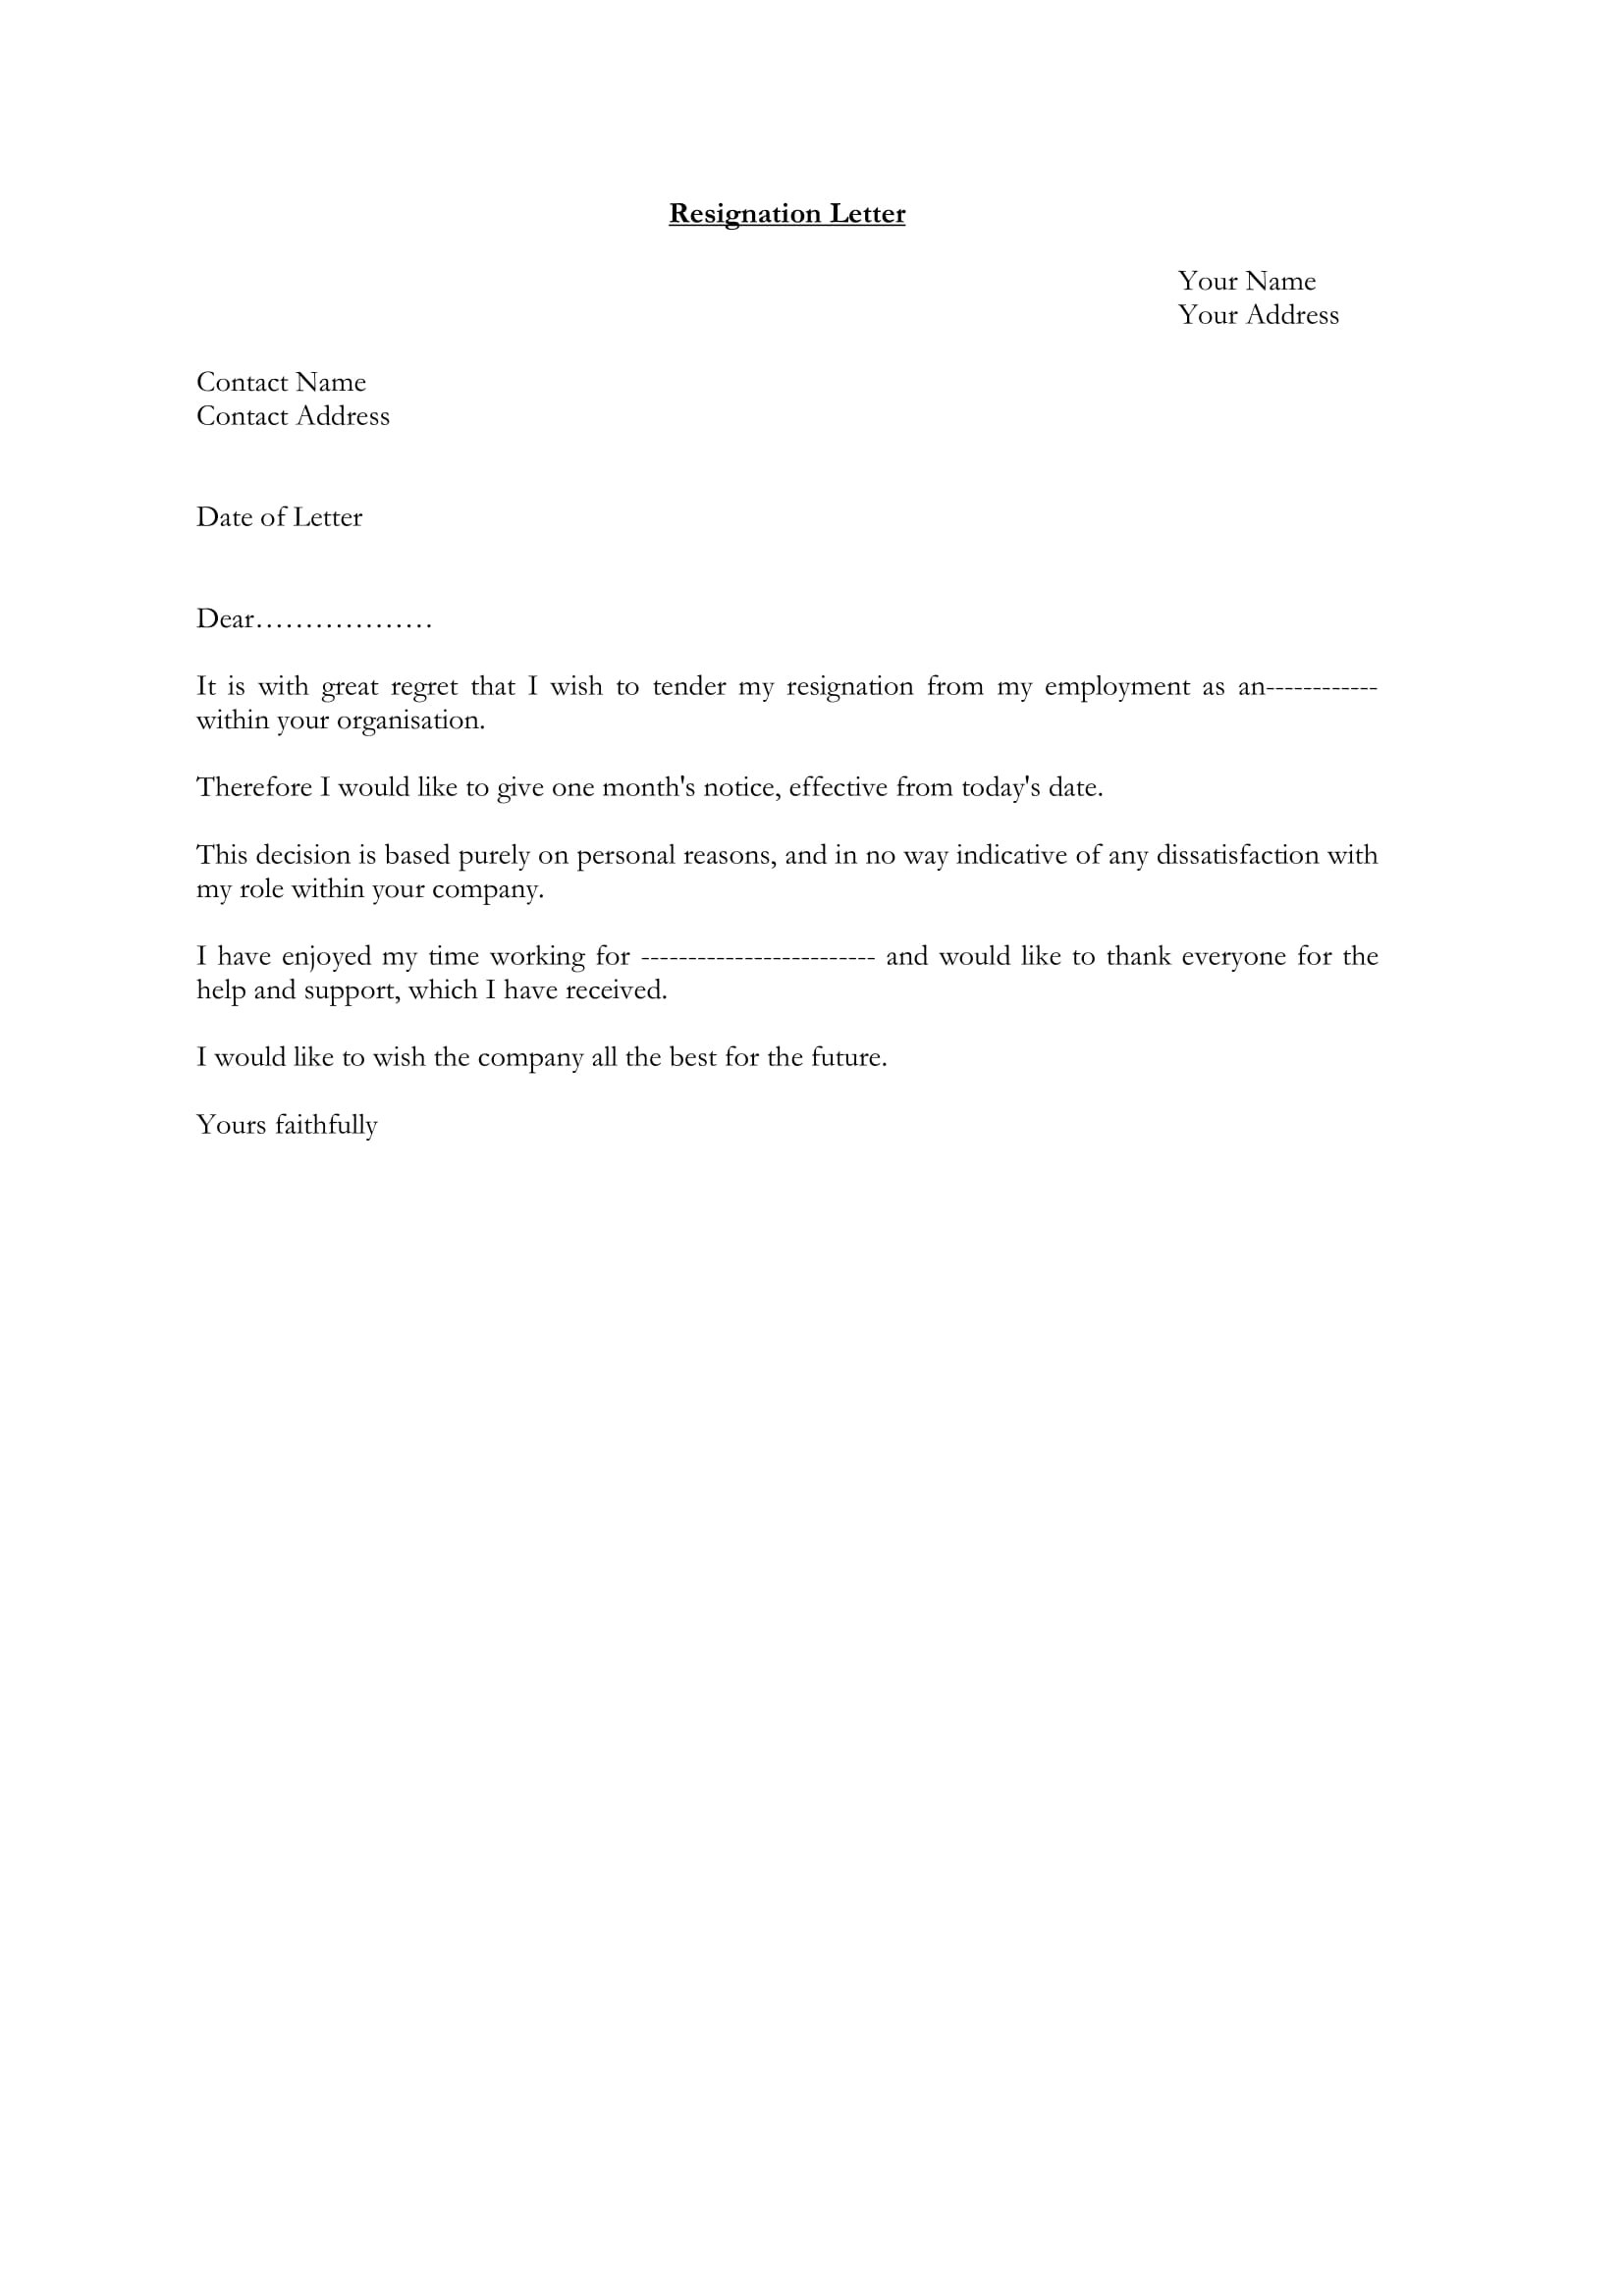 7 Manager Resignation Letter Examples  PDF DOC  Examples